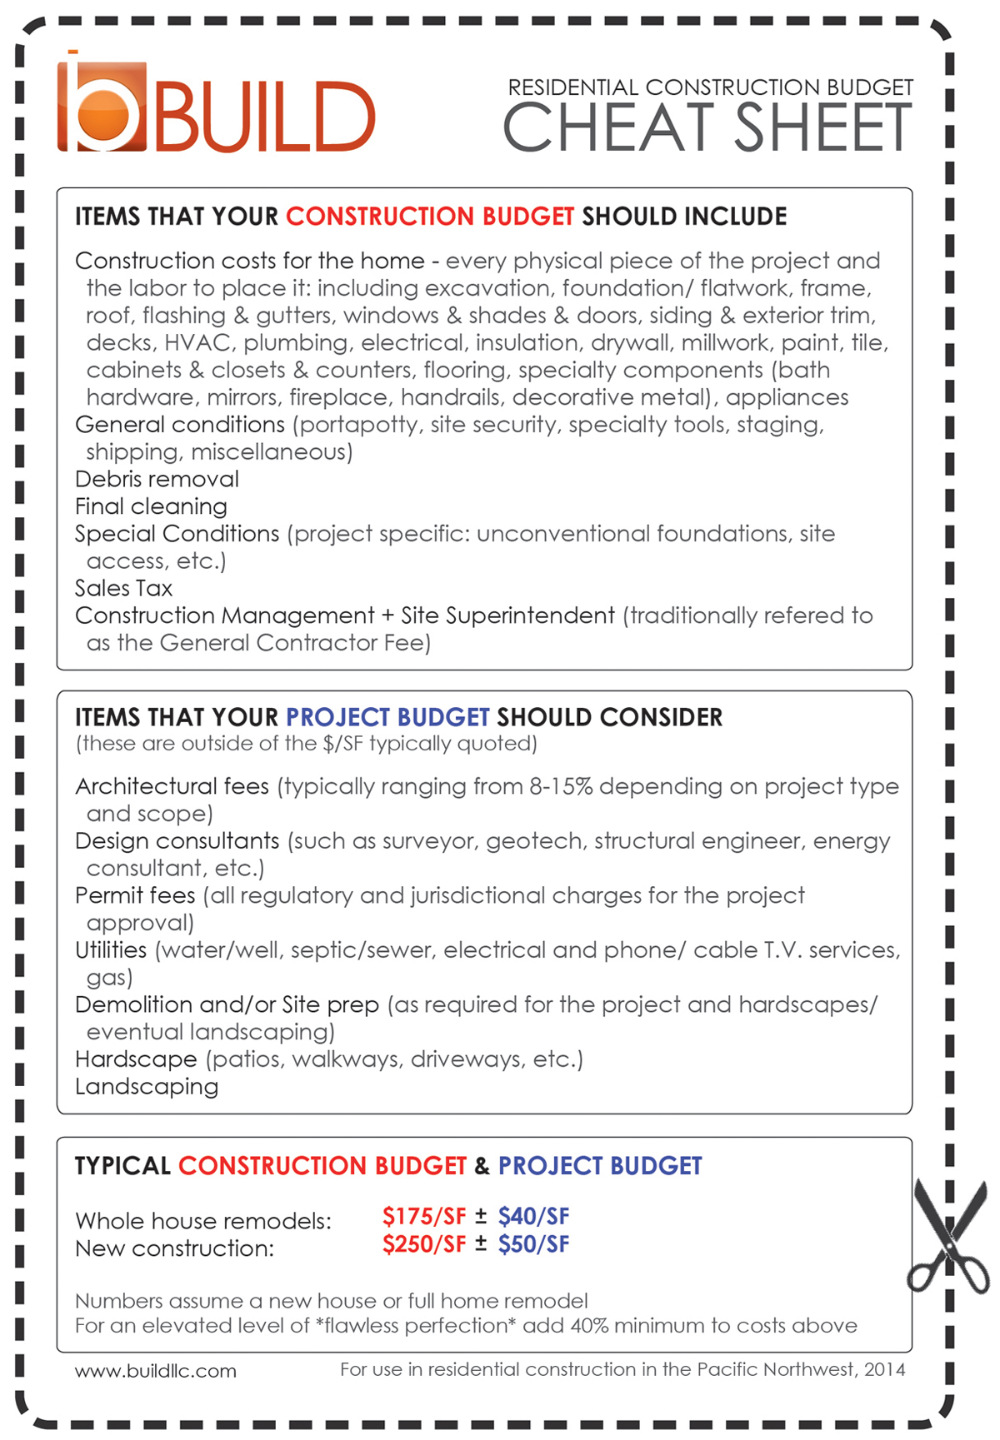 Defining A Construction Budget The 2014 Cheat Sheet Build Blog In 2020 Home Building Tips Budgeting Construction Cost